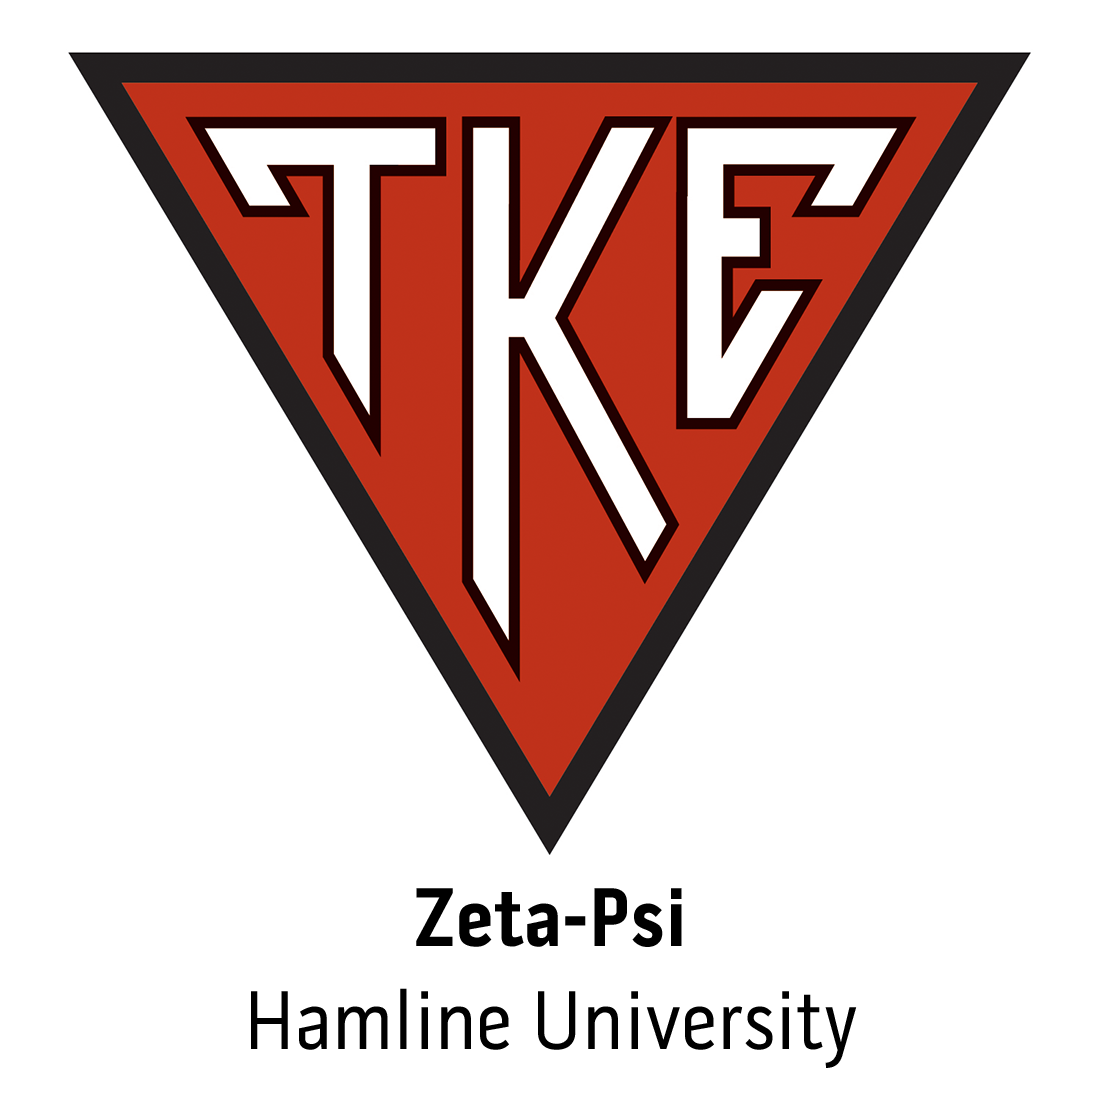 Zeta-Psi Chapter at Hamline University